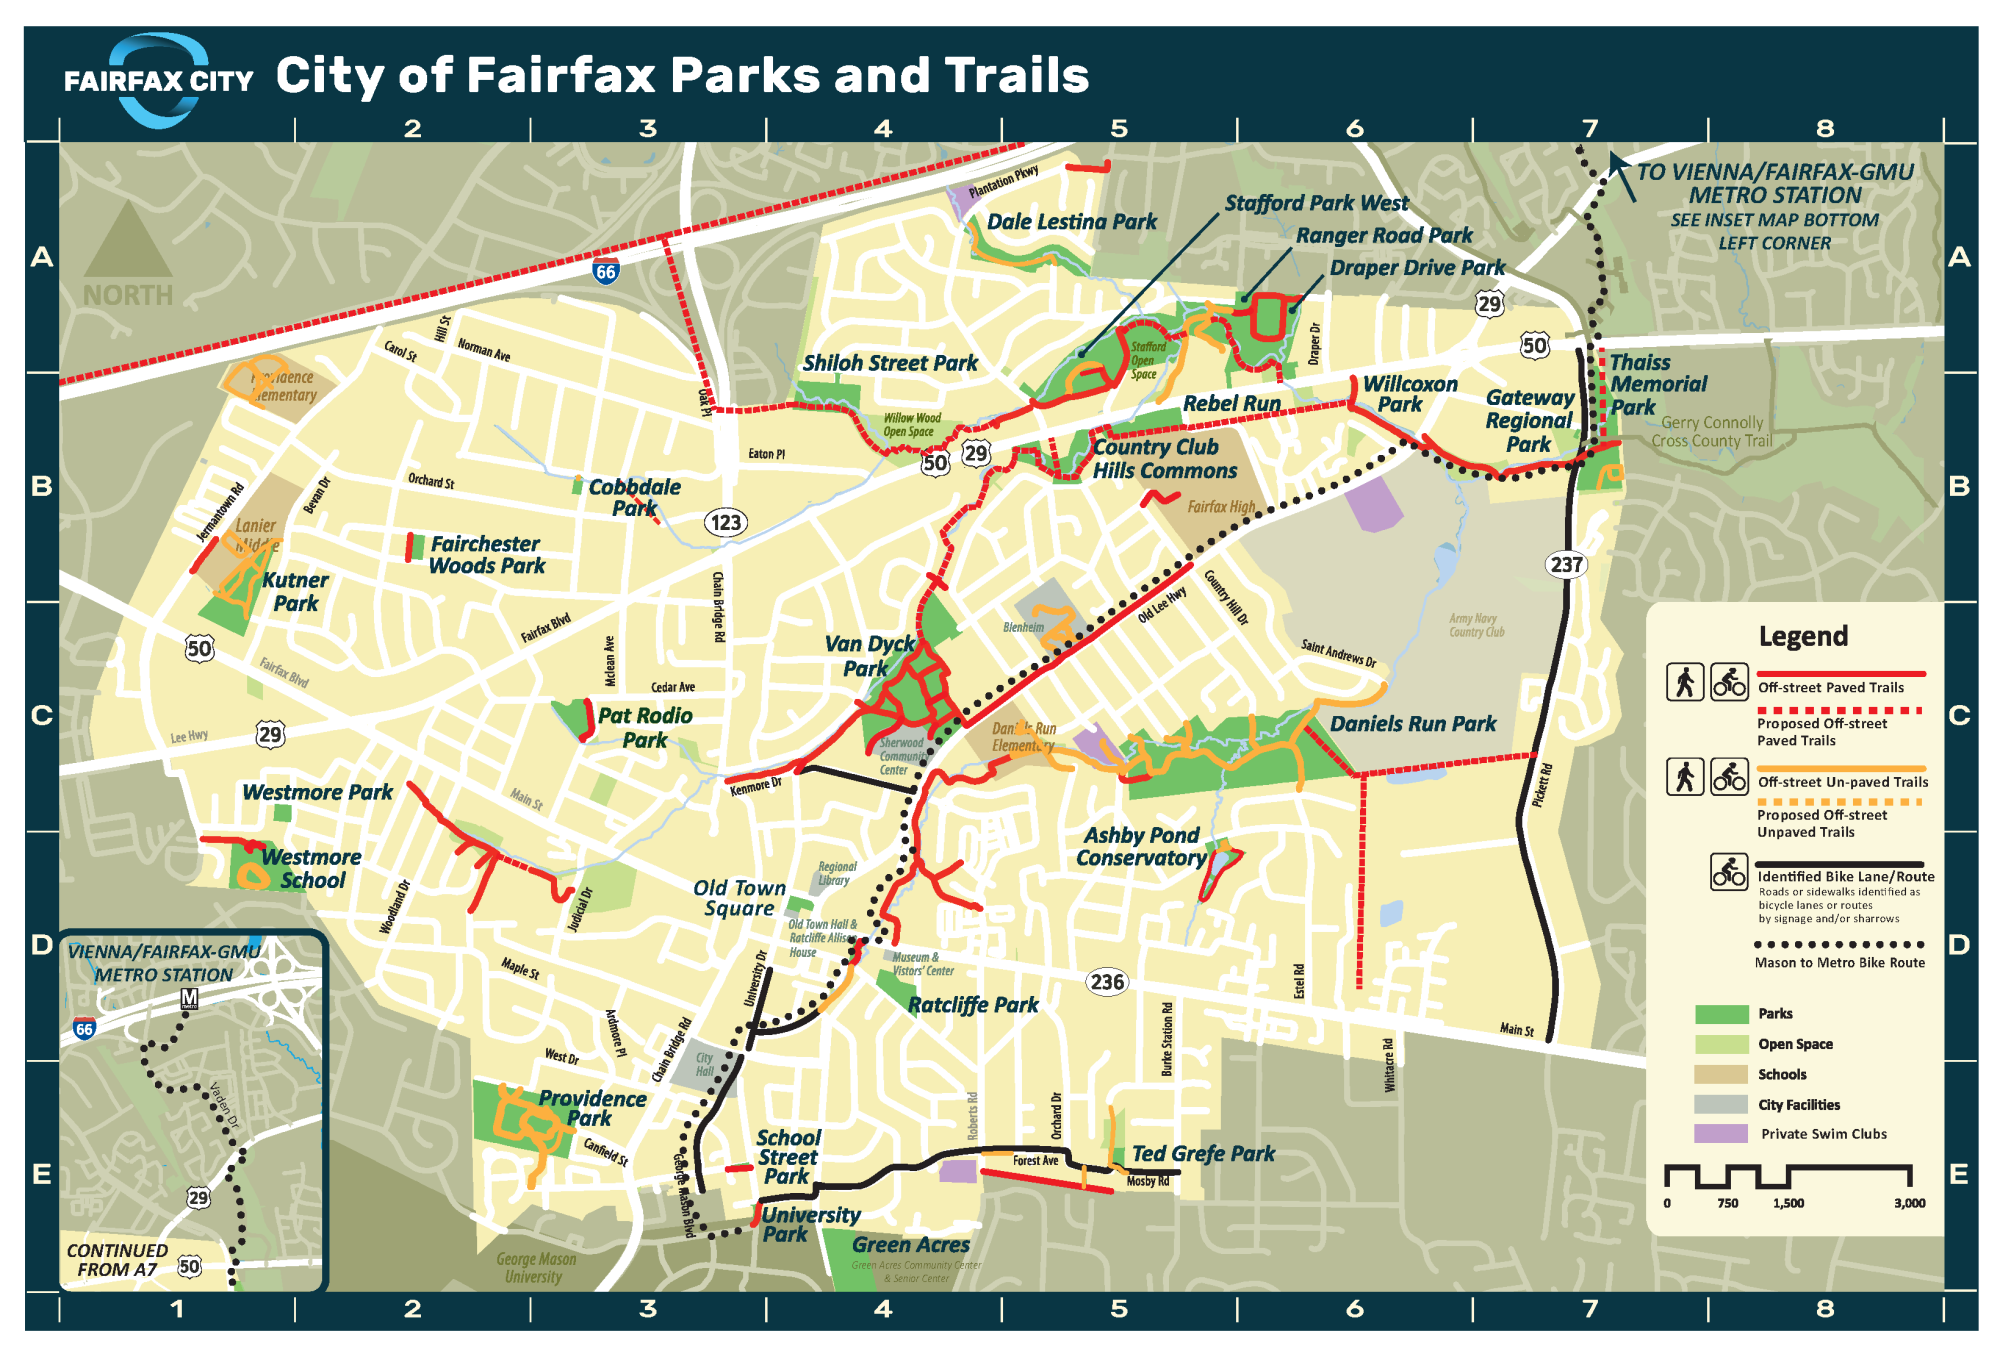 City of Fairfax Trails Map 2020